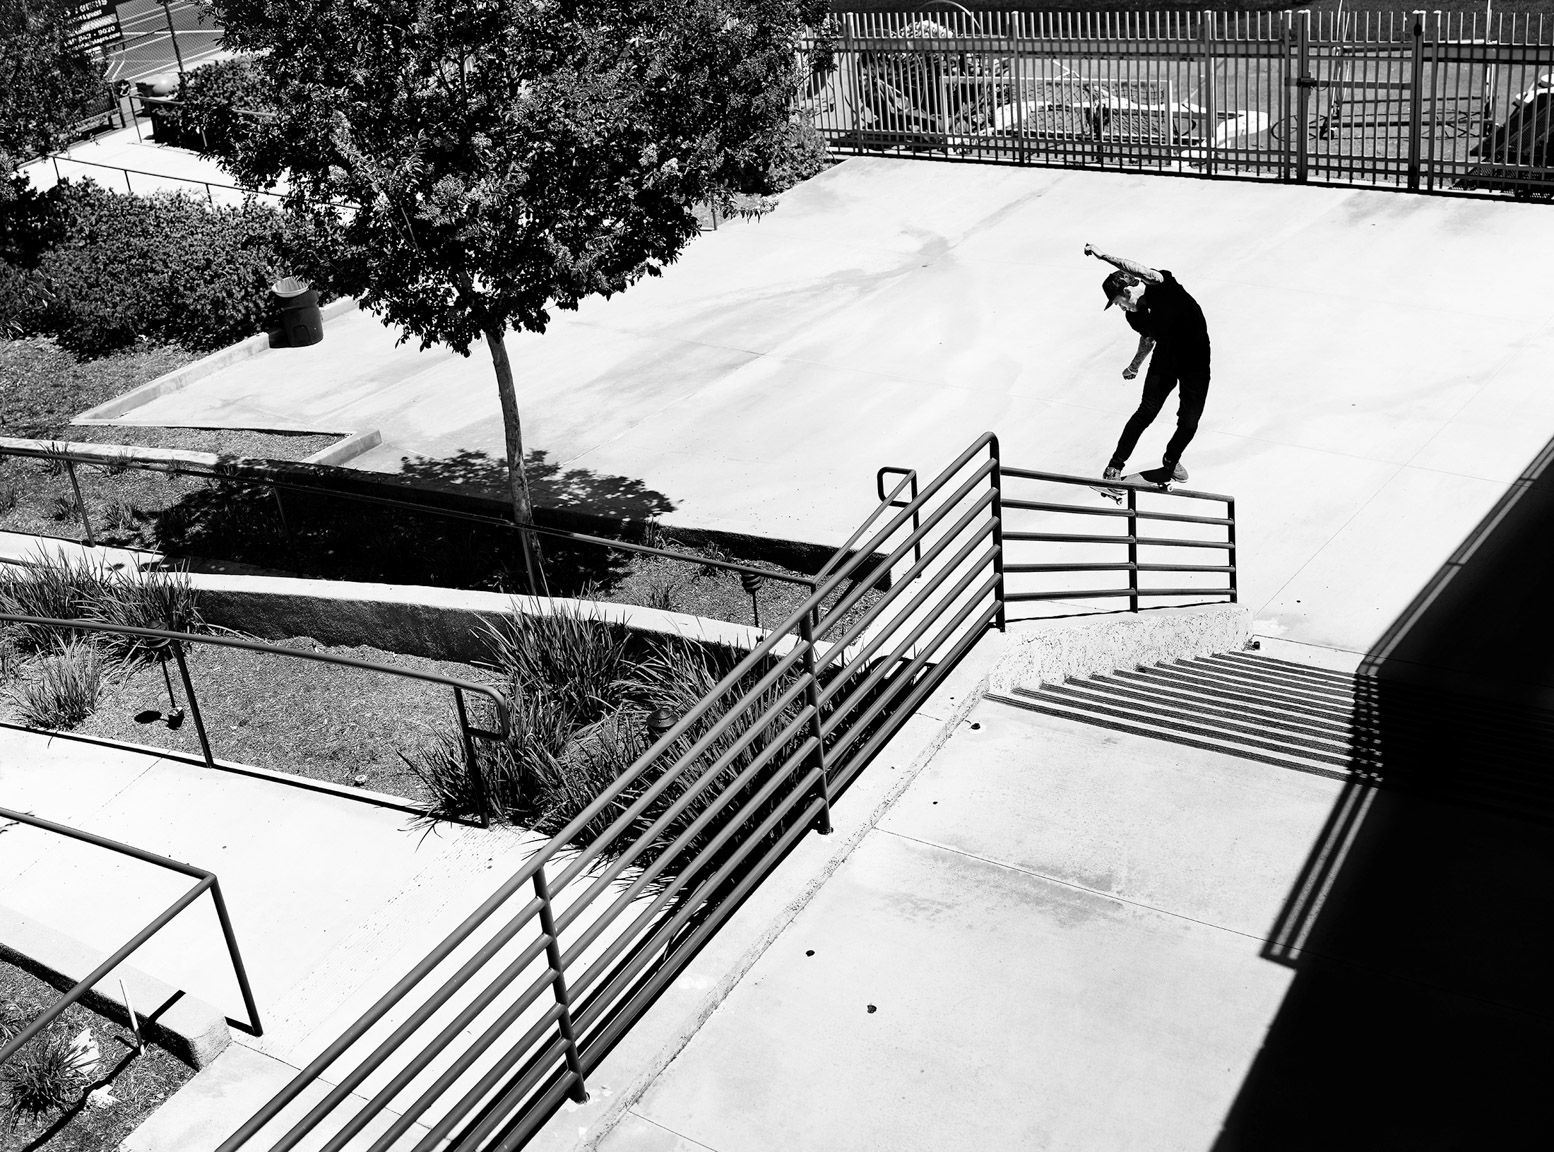 Nyjah Huston, Los Angeles, California